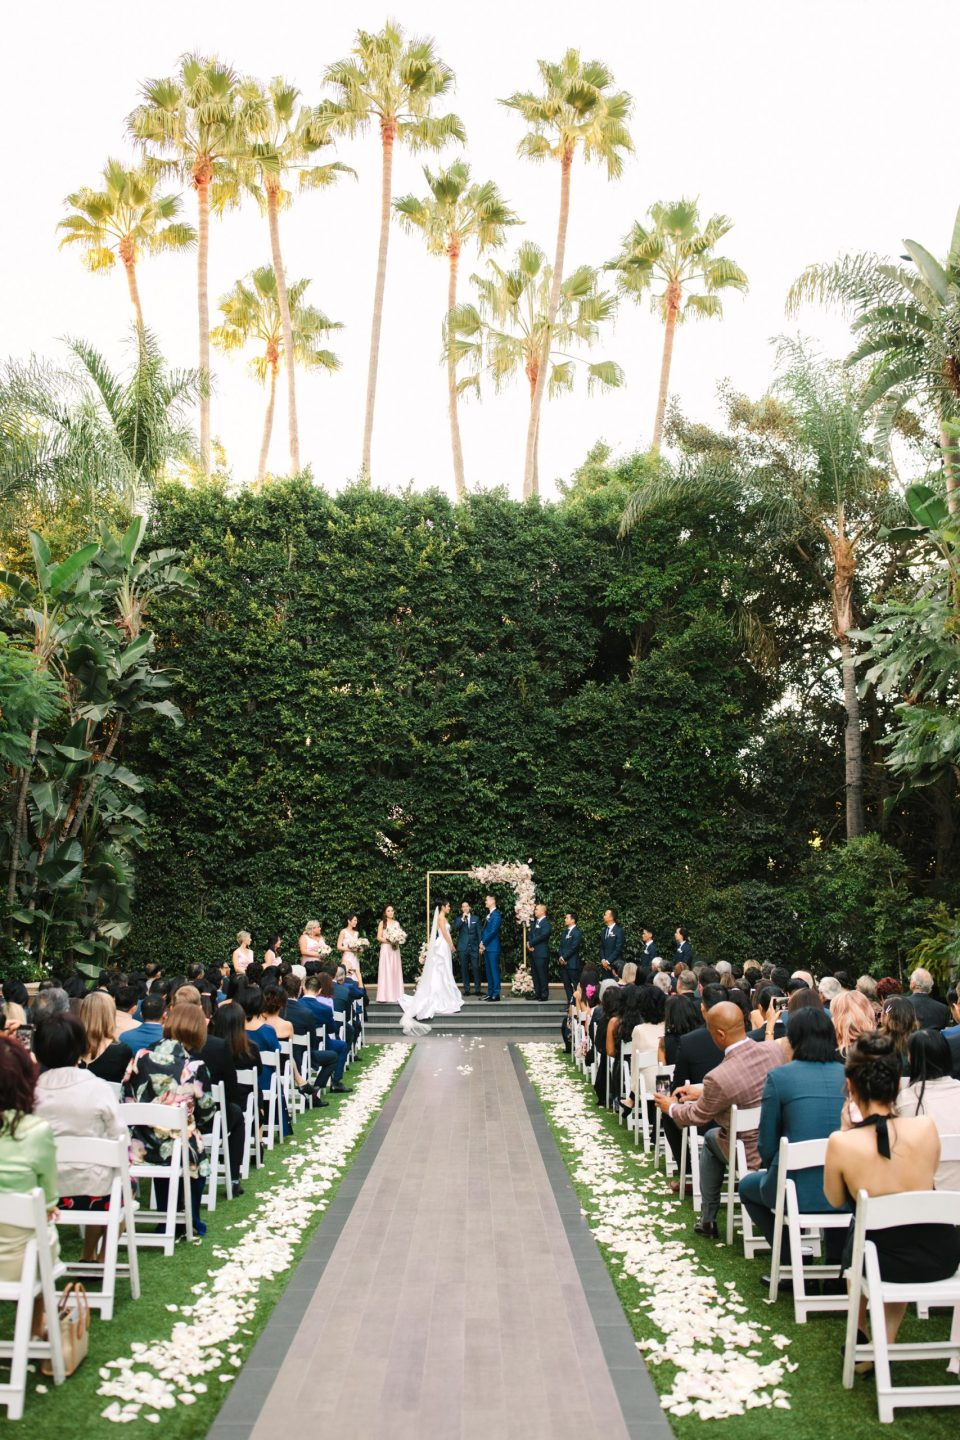 Beverly Hills Four Seasons wedding ceremony by Mary Costa Photography